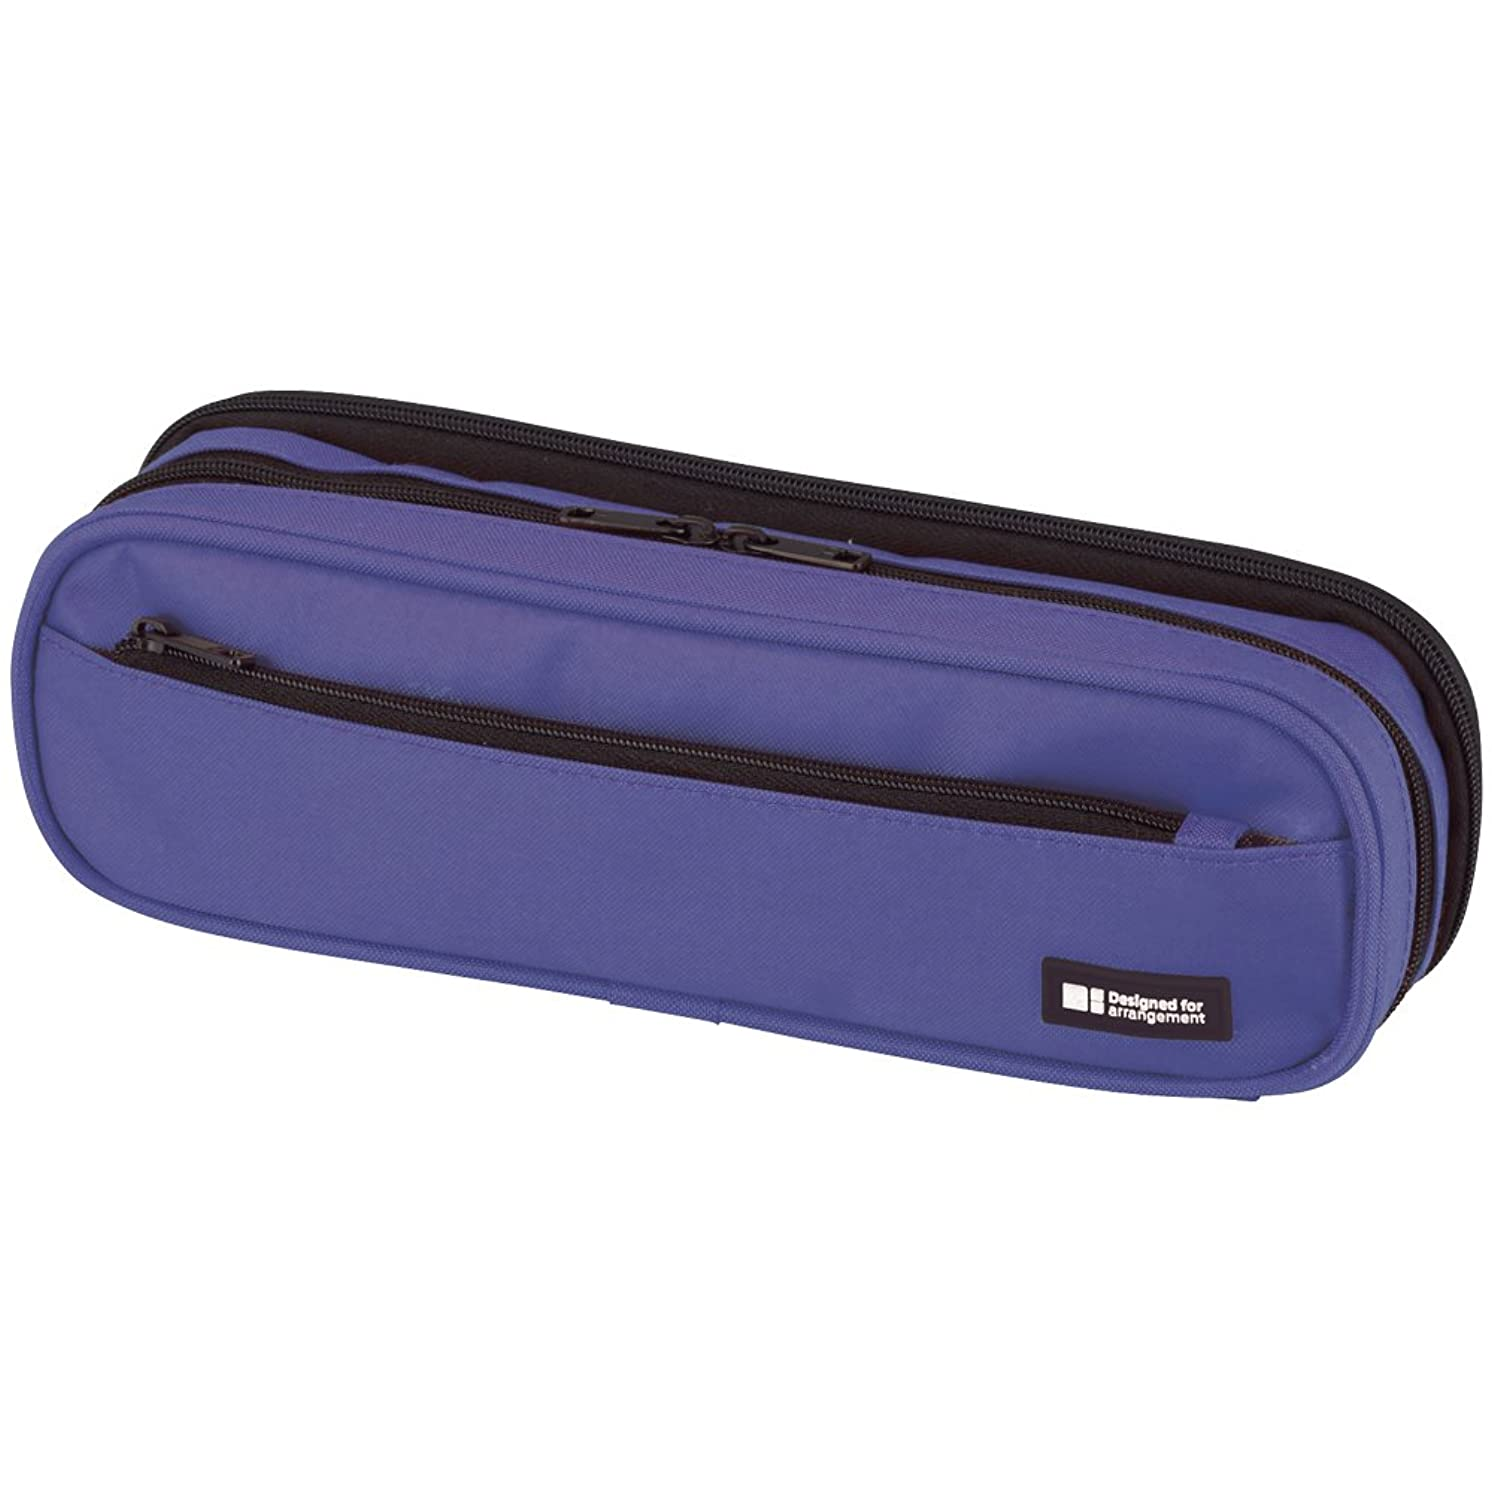 LIHIT LAB. Double Zipper Pen Case, 9.4 x 2.4 x 3 inches, Blue (A7557-108)